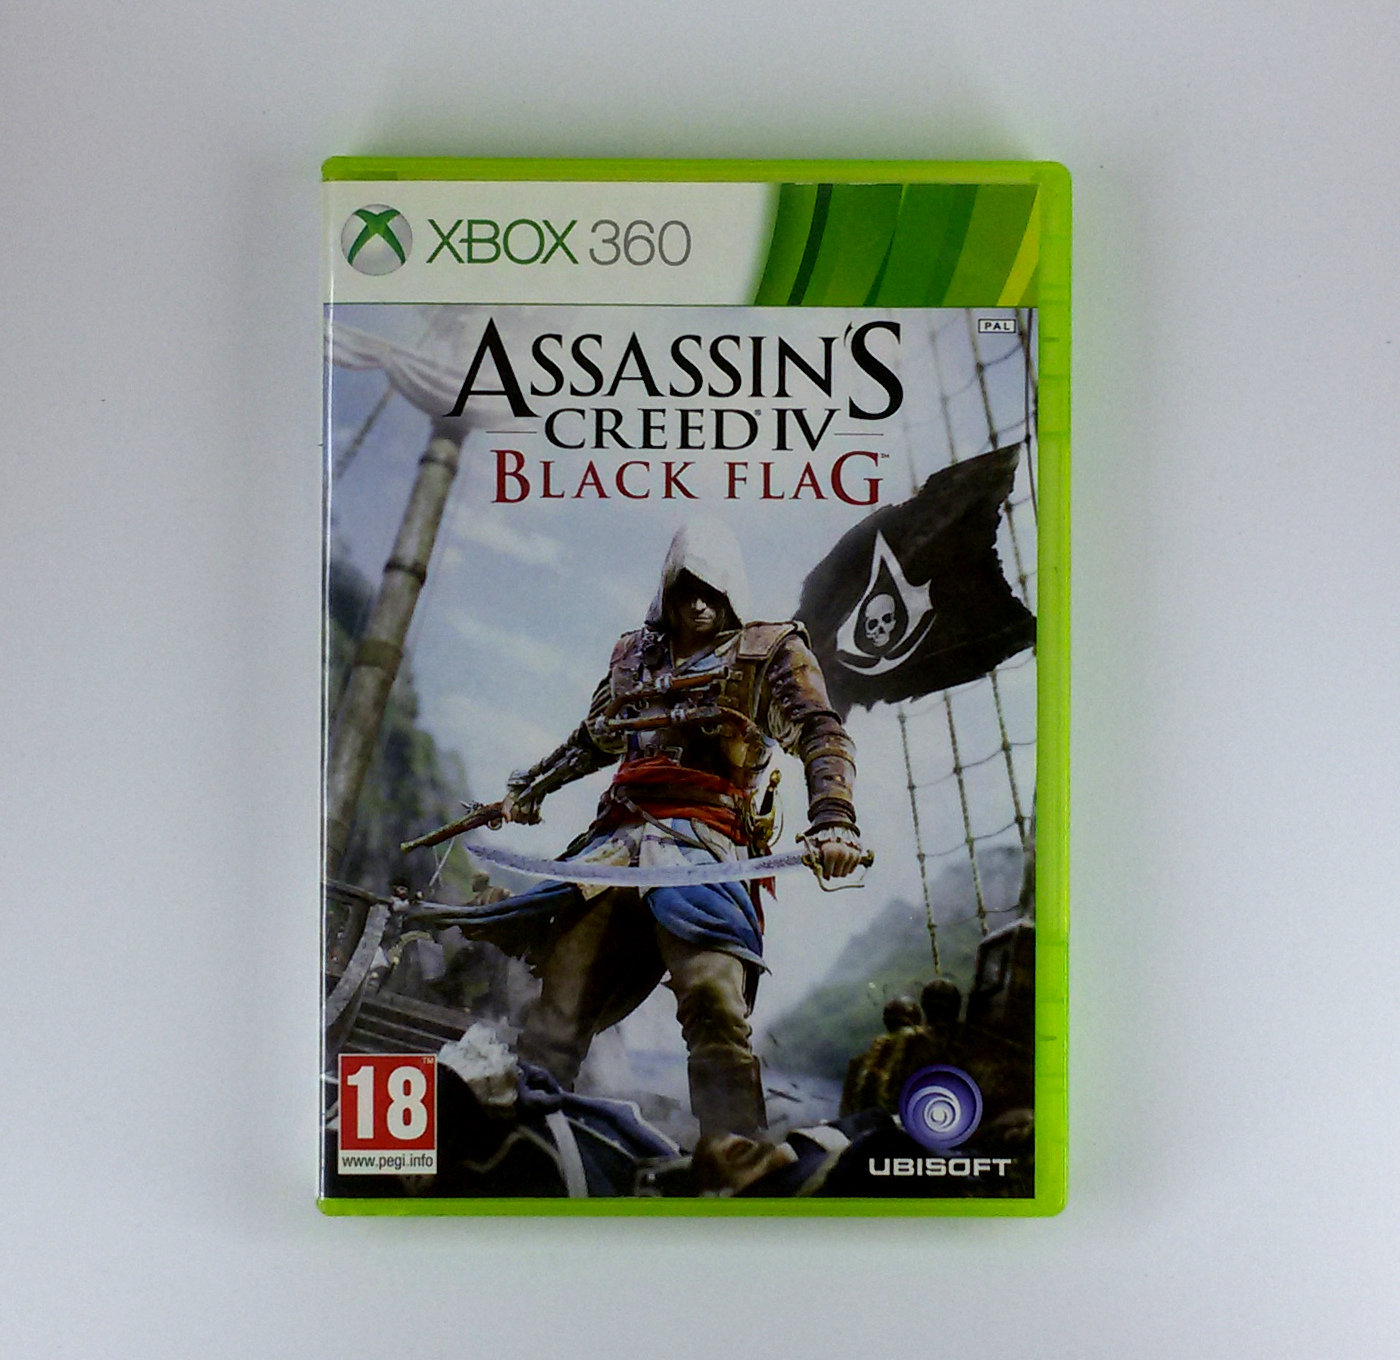 assassins-creed-4-black-flag-front6538EBF5-62DB-7073-E41A-92841E0FE0F9.jpg